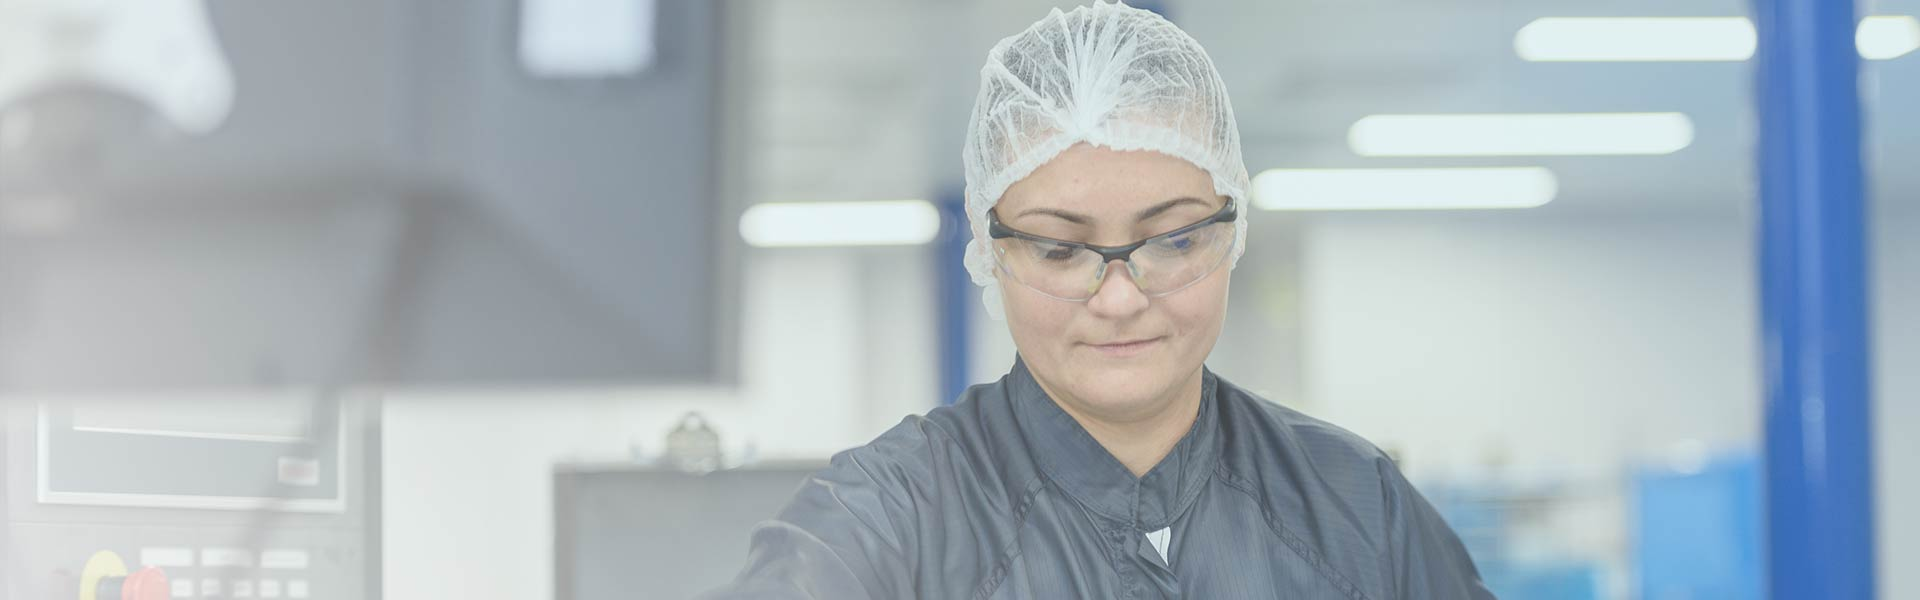 Female Bemis Healthcare Packaging Europe operative with hair net and eye goggles